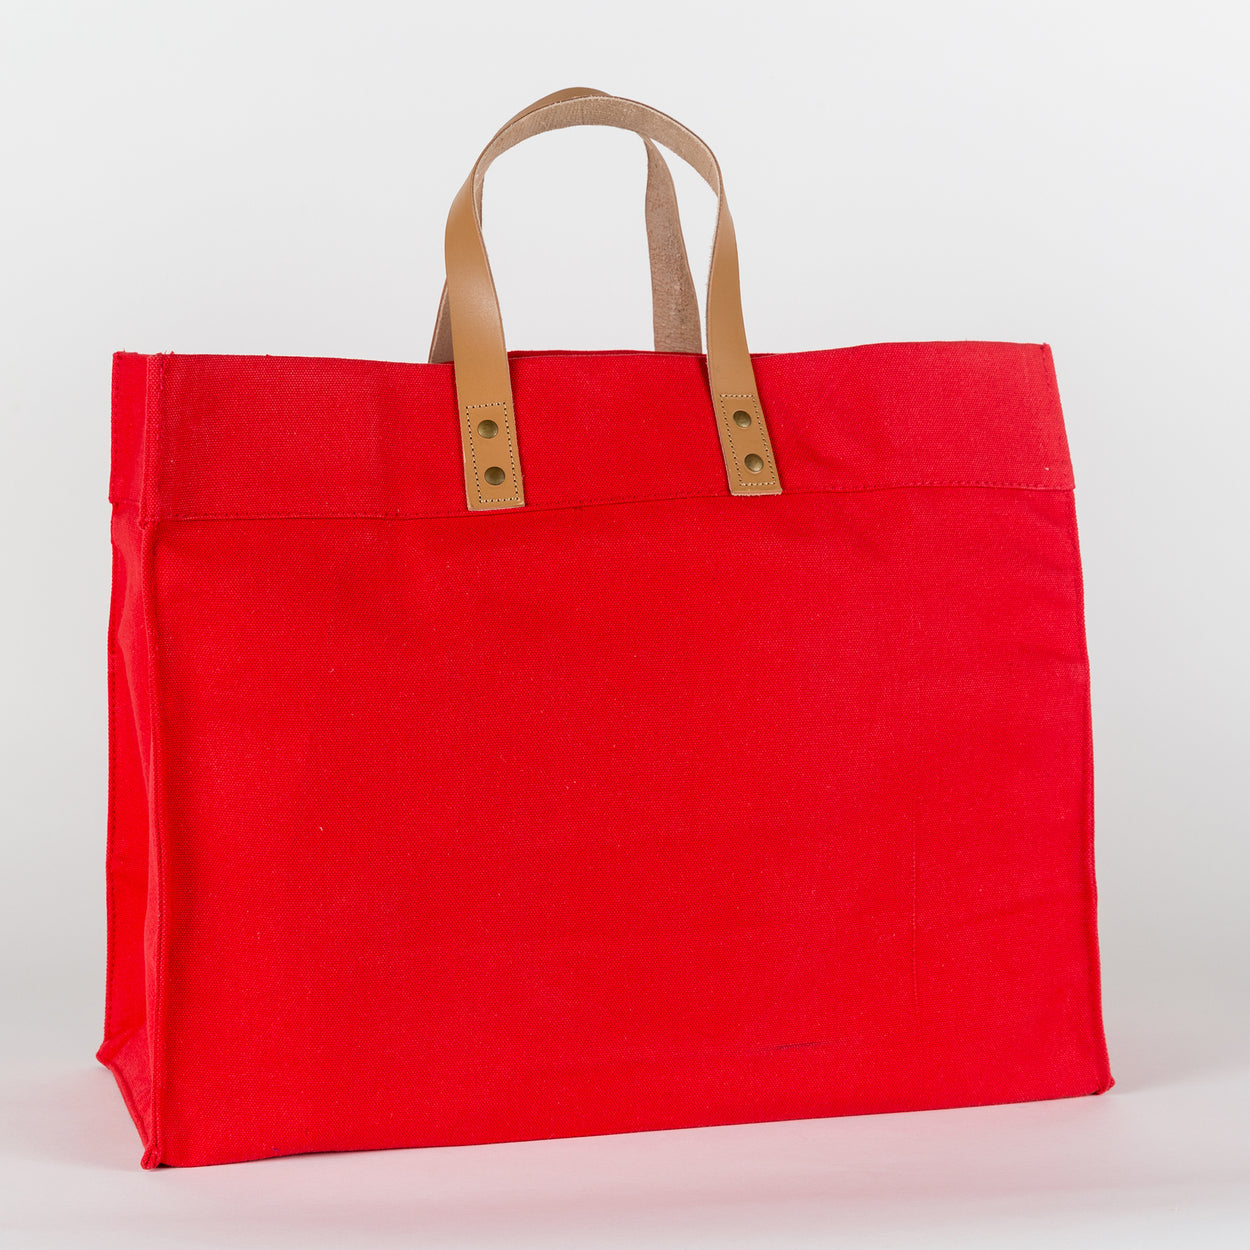 Shop Owner Tote Large Mail Tote Package Tote Mailing Day Tote Maling Tote Large Box Carrier Canvas Tote Large Tote Bag Mail Bag